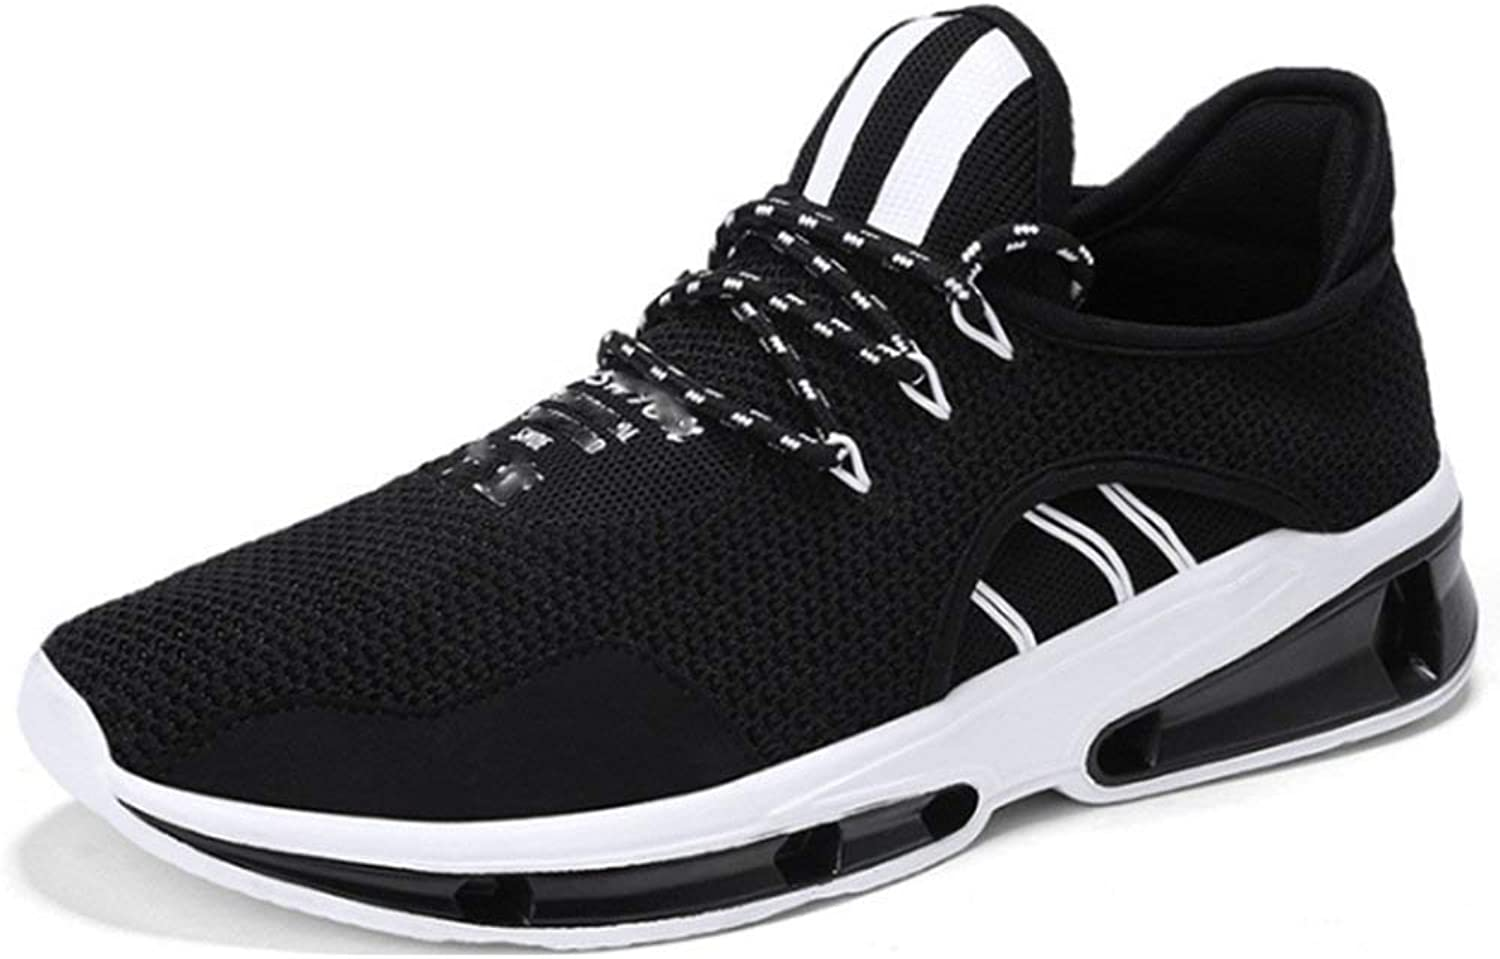 FuweiEncore Men's Casual Sport shoes Running shoes Fitness Breathable Comfortable Fashion Student shoes (color   7, Size   41EU)